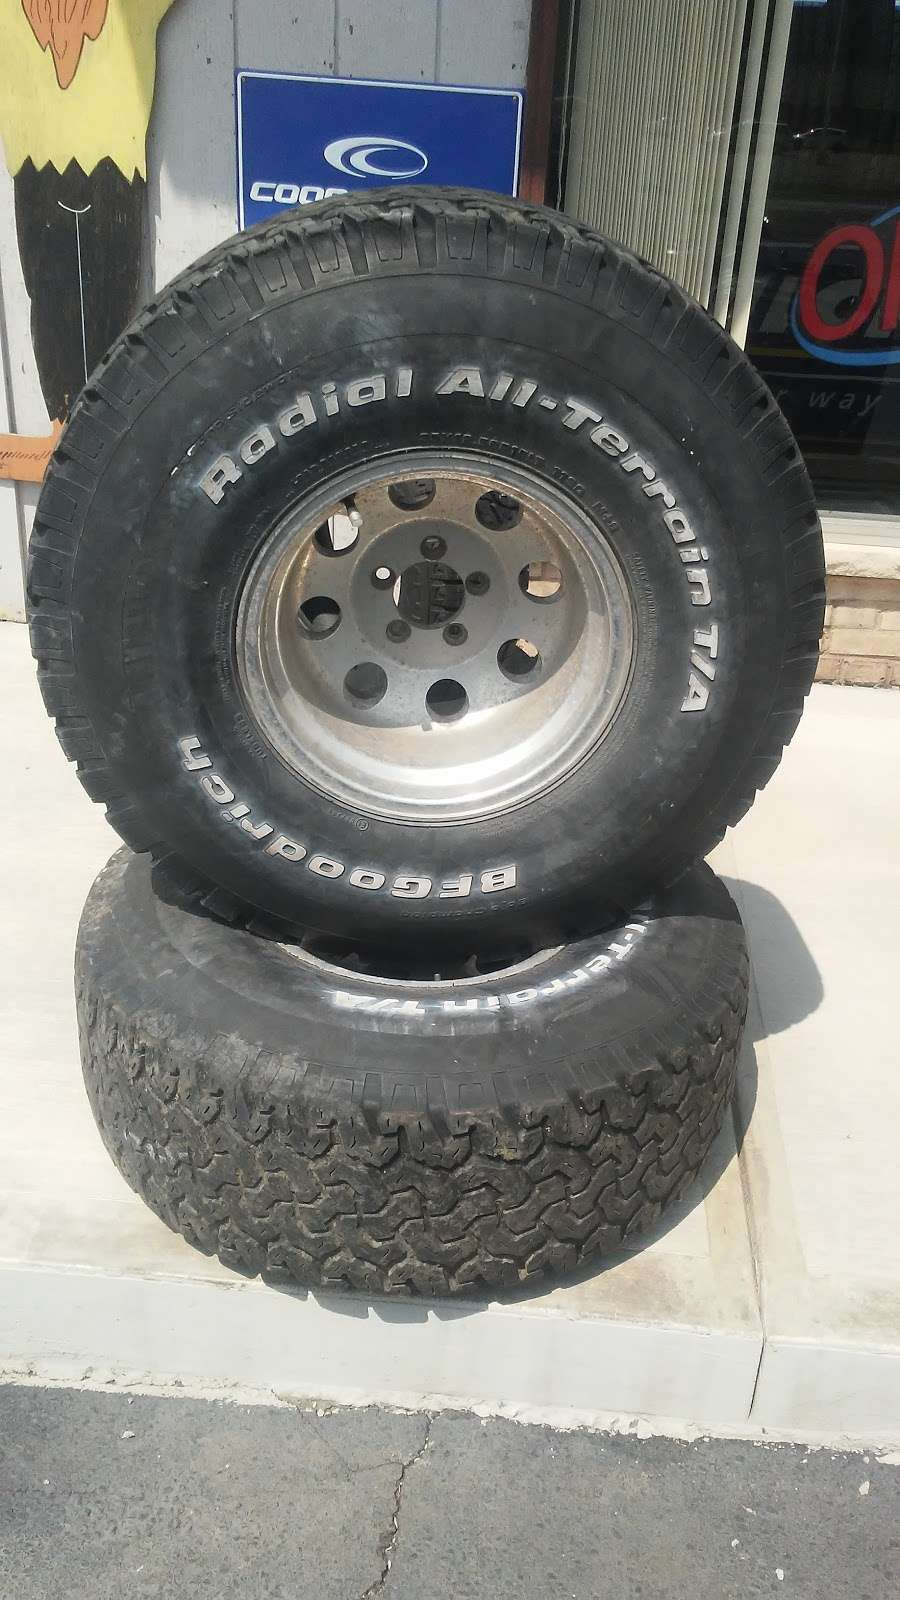 The Tire Guys - car repair  | Photo 9 of 10 | Address: 2261 Sans Souci Pkwy, Hanover, PA 18706, USA | Phone: (570) 223-4212